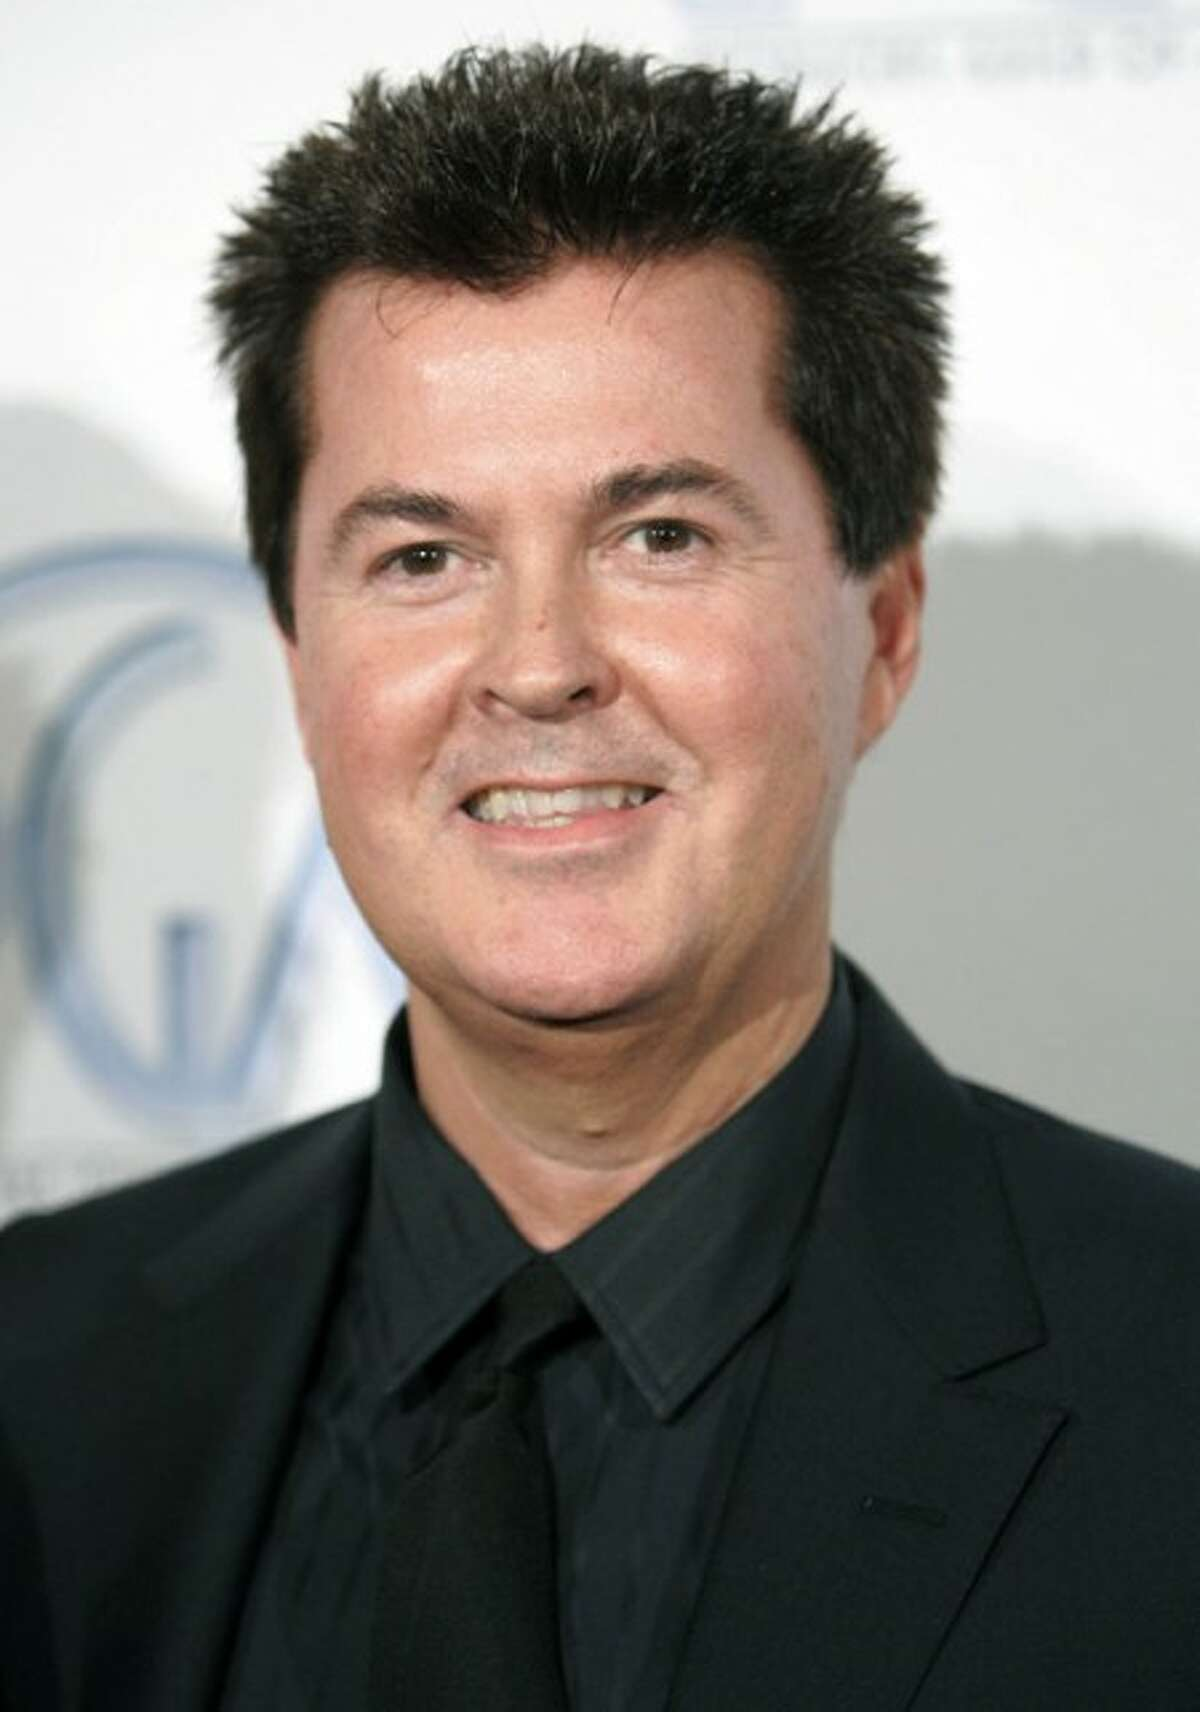 FILE - In this Feb. 2, 2008 file photo, producer Simon Fuller arrives at the 2008 Producers Guild Awards where Fuller received the Visionary Award in Beverly Hills, Calif. (AP Photo/Danny Moloshok, file)